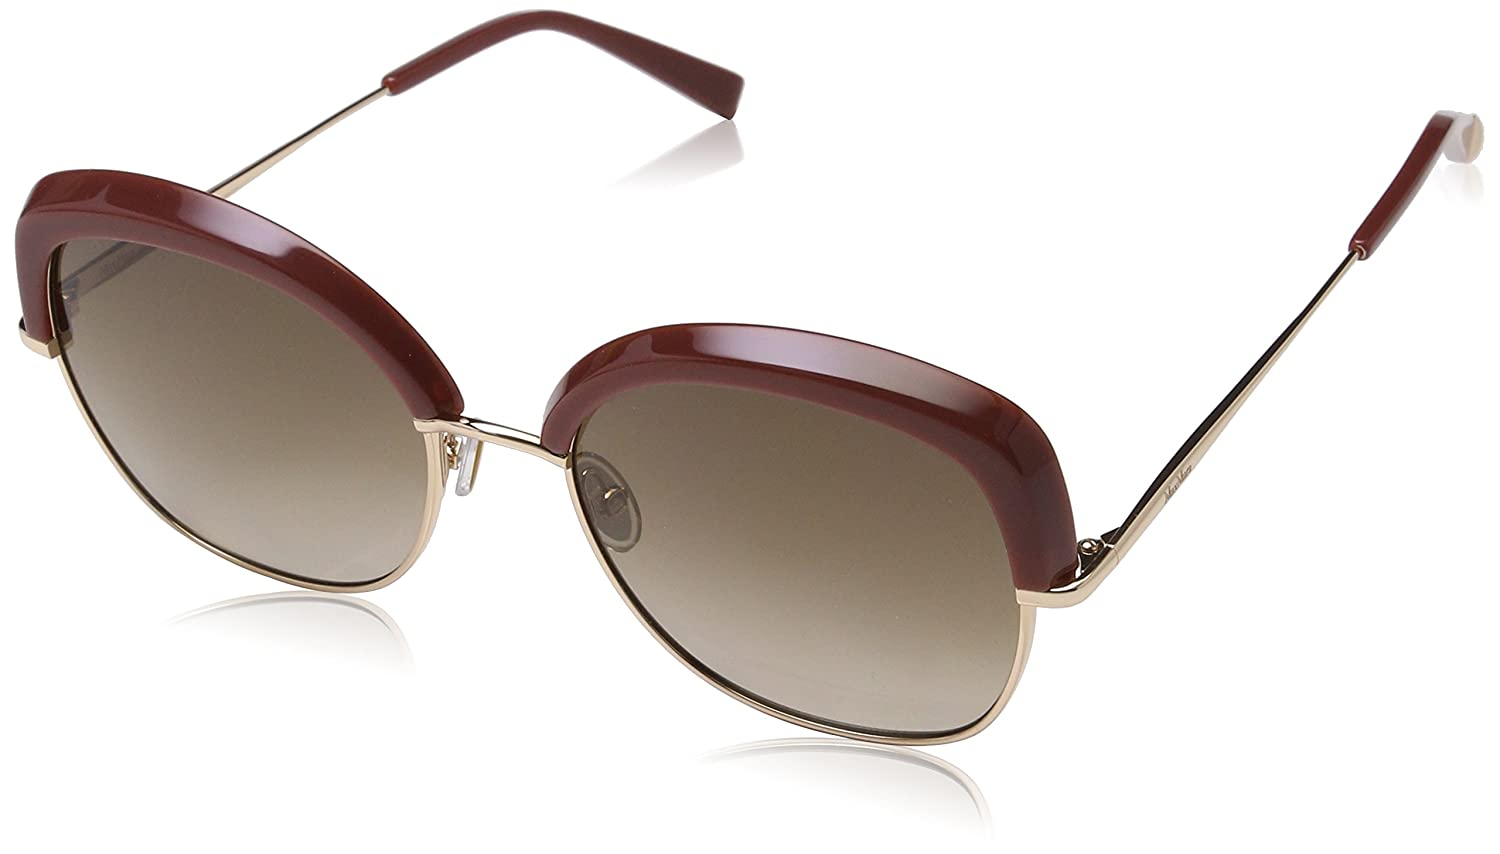 Max Mara Mm Needle V Ha Buh 56 Gafas de sol, Dorado (Brick Gold/Bw Brown), Mujer